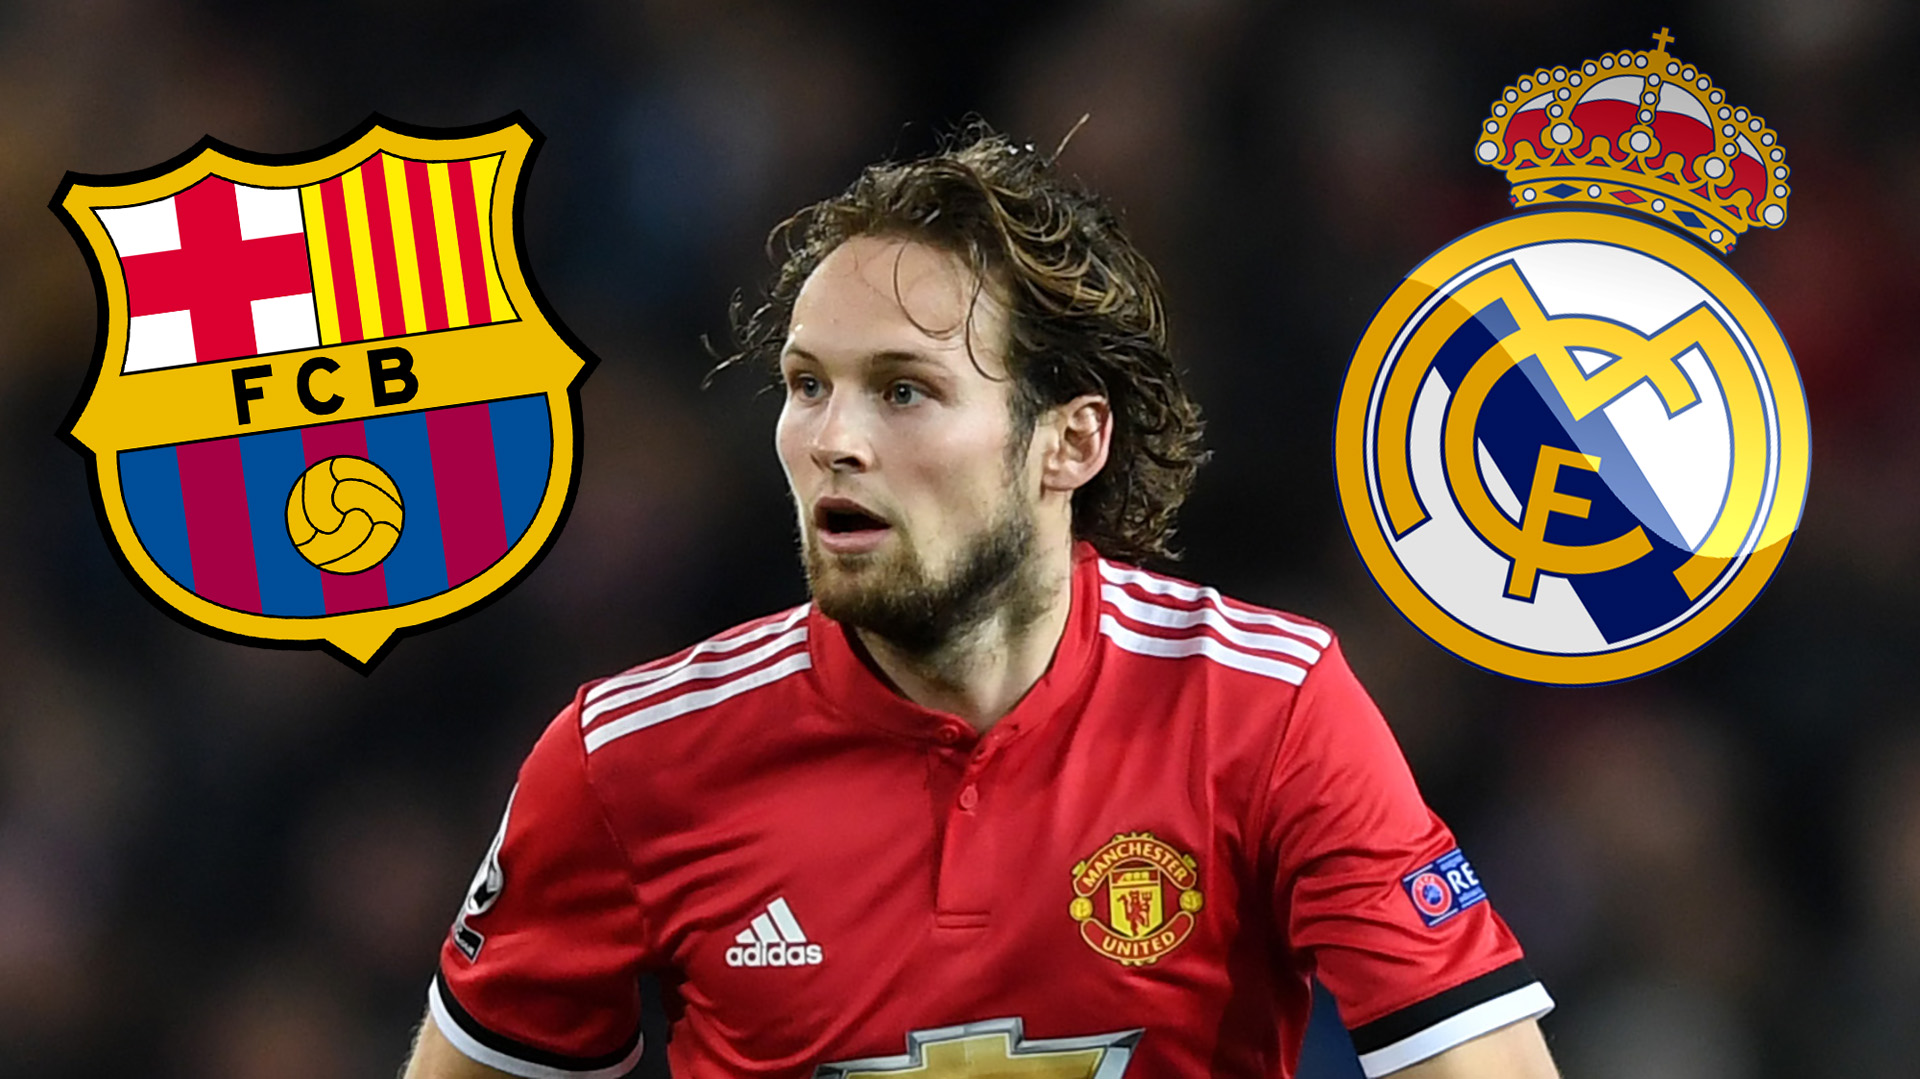 Real Madrid January transfer news: All the latest rumours ahead of